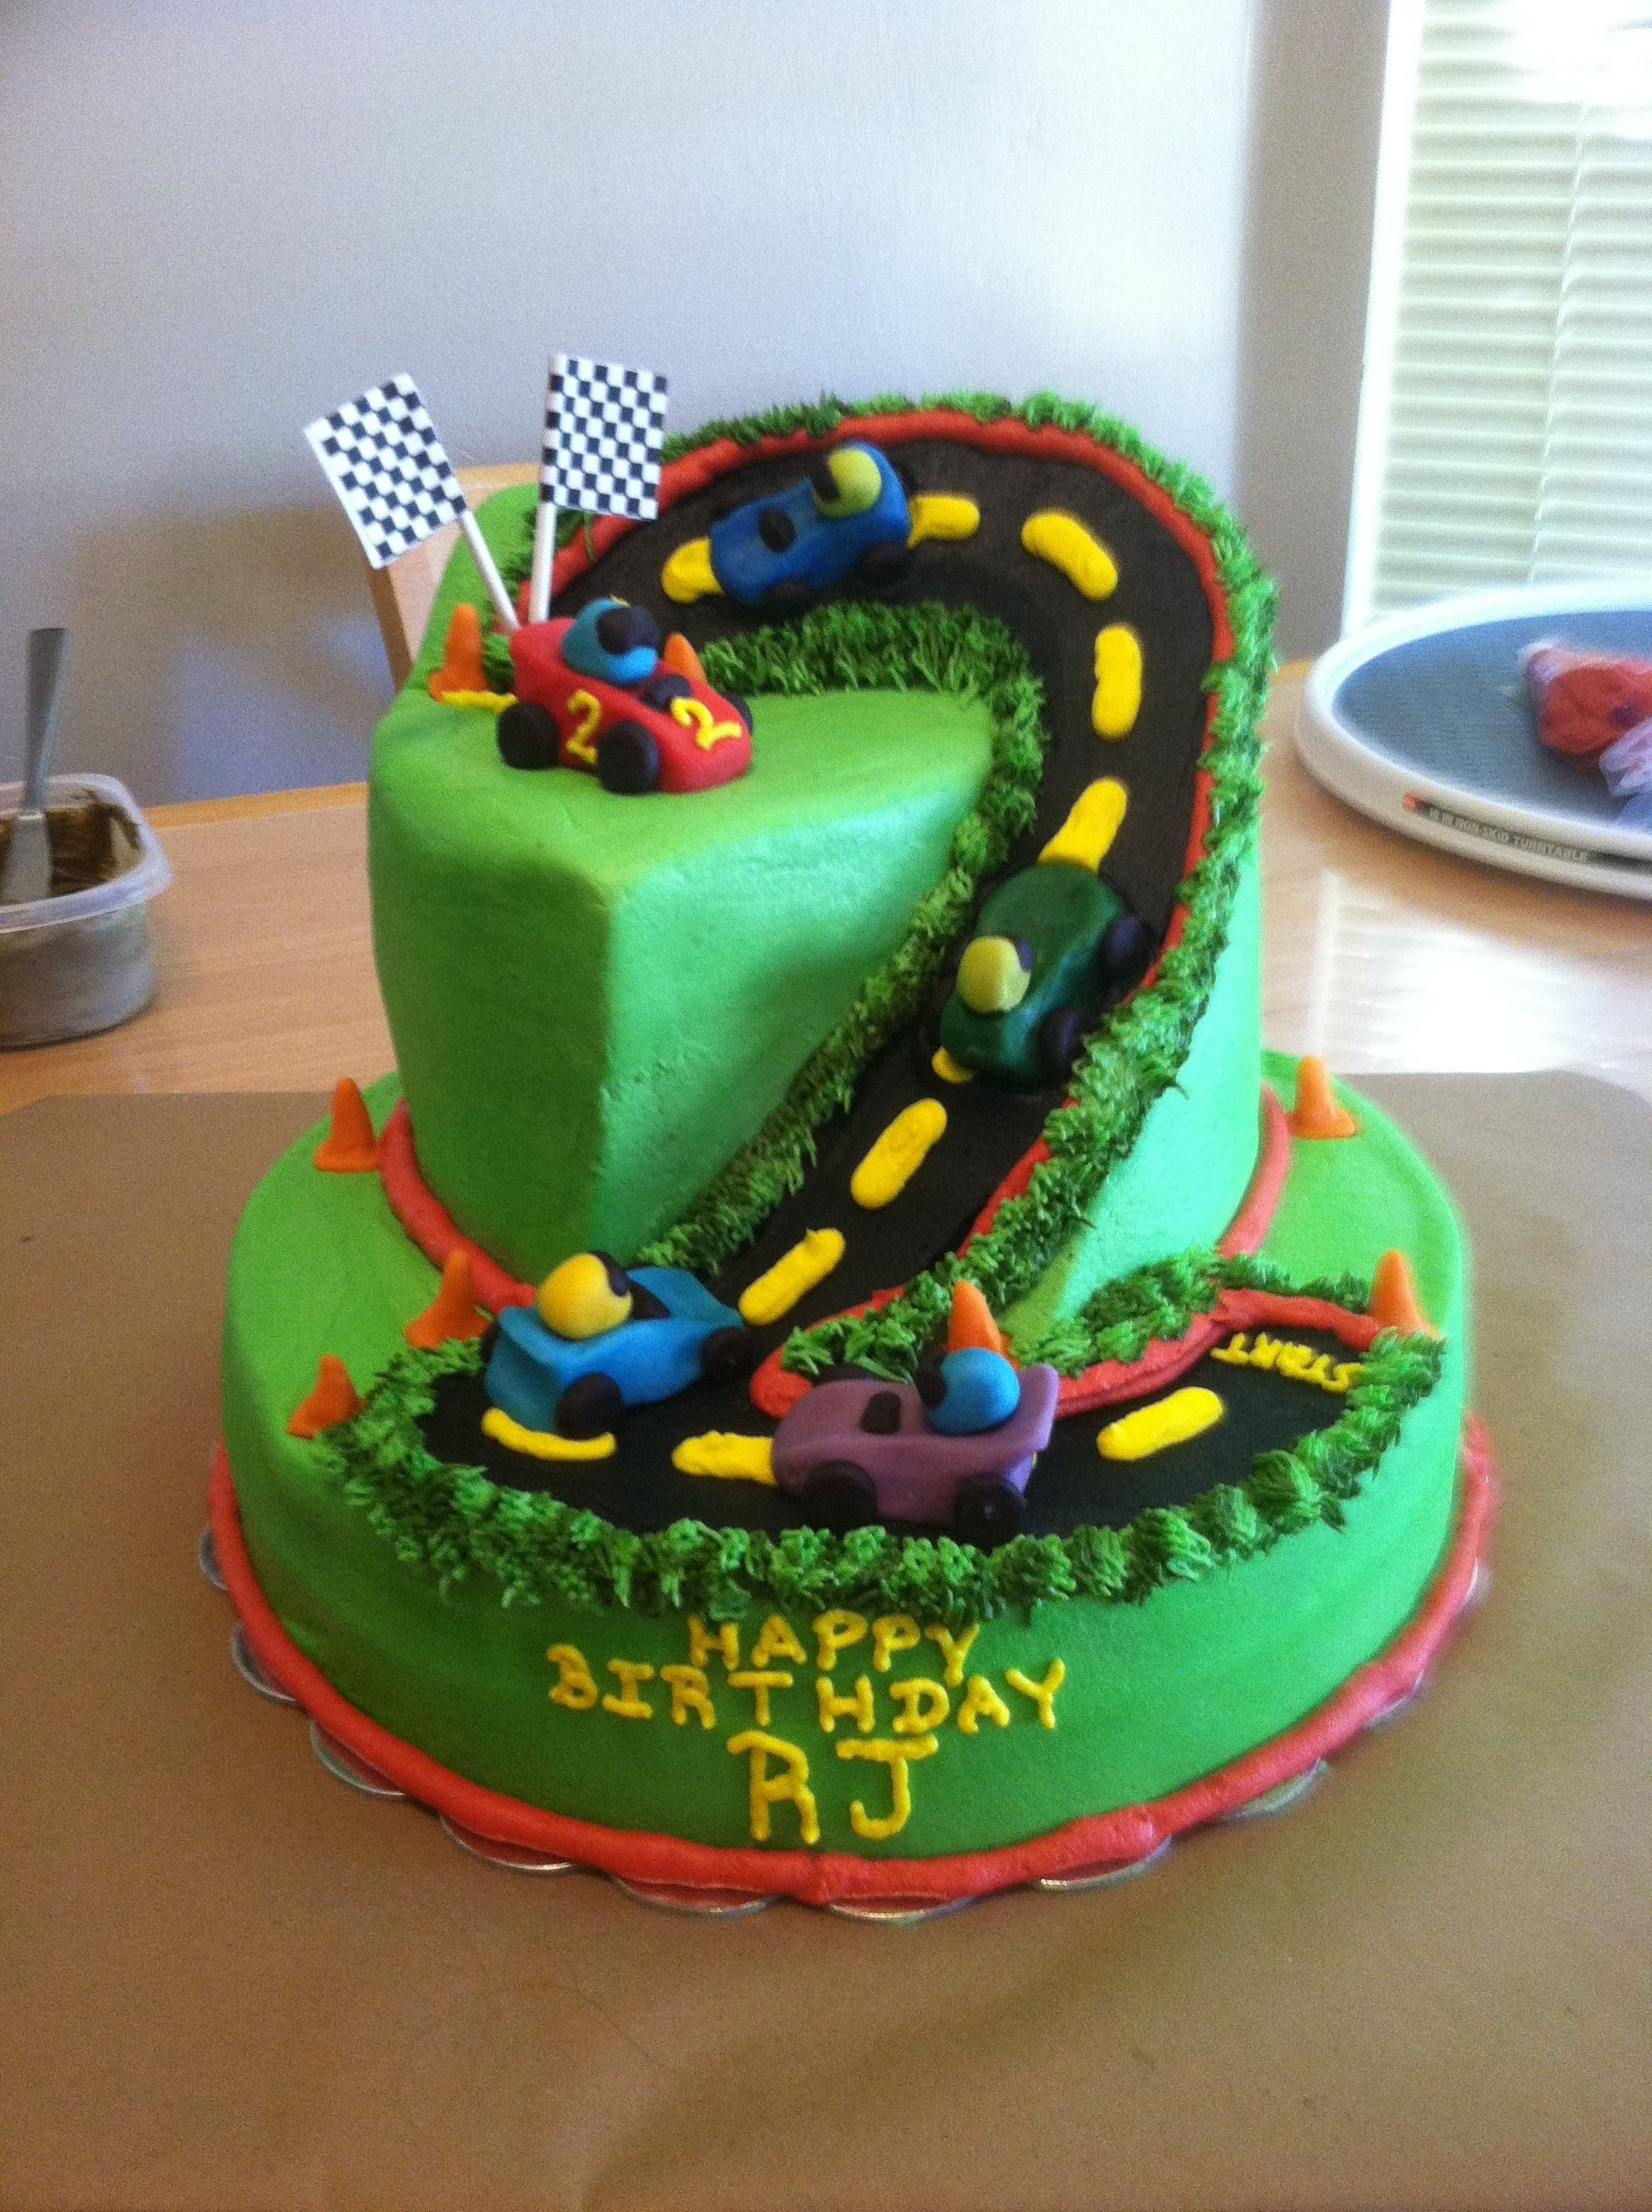 2 Year Birthday Ideas Race Track Cake Cake Made For 2 Year Old Boy Client Asked For